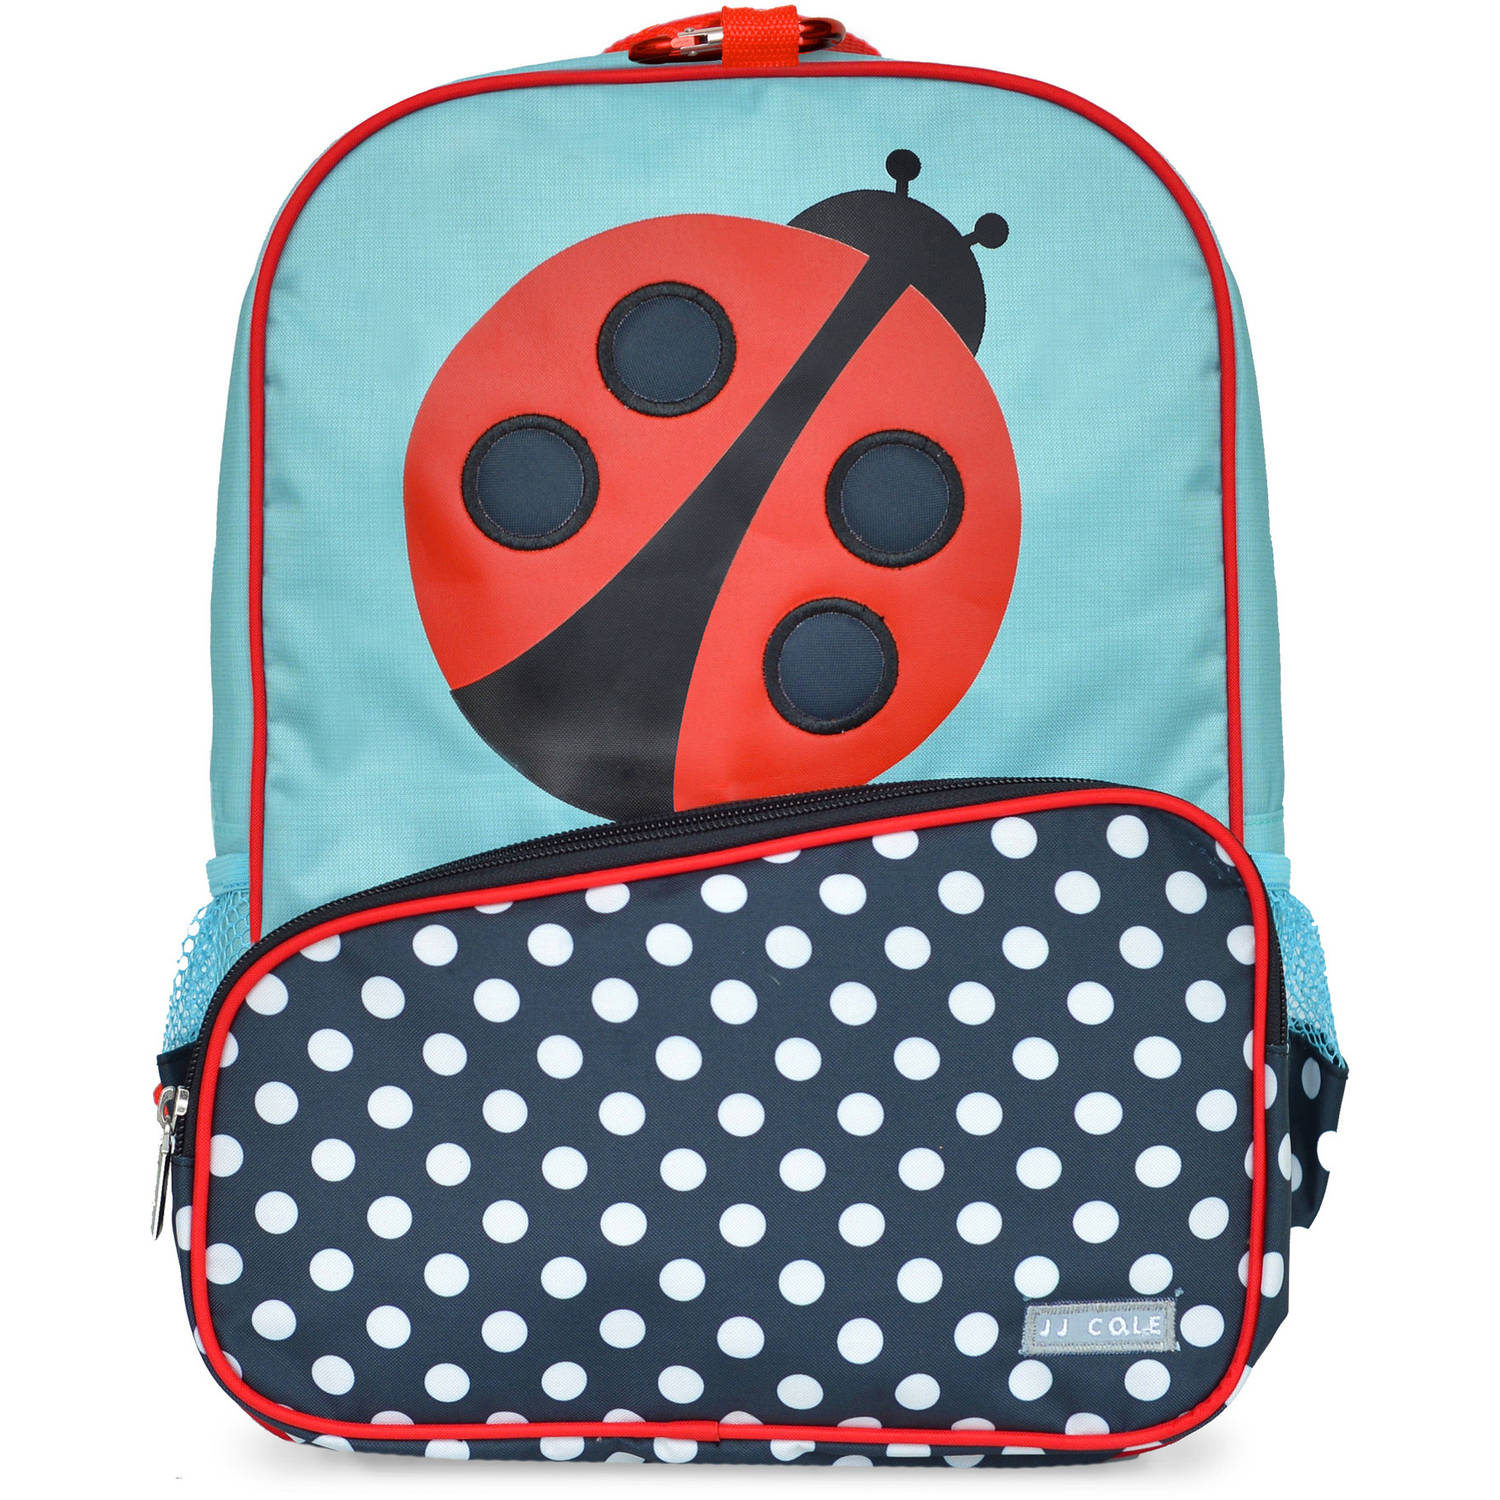 Little Toddler Backpack, Ladybug